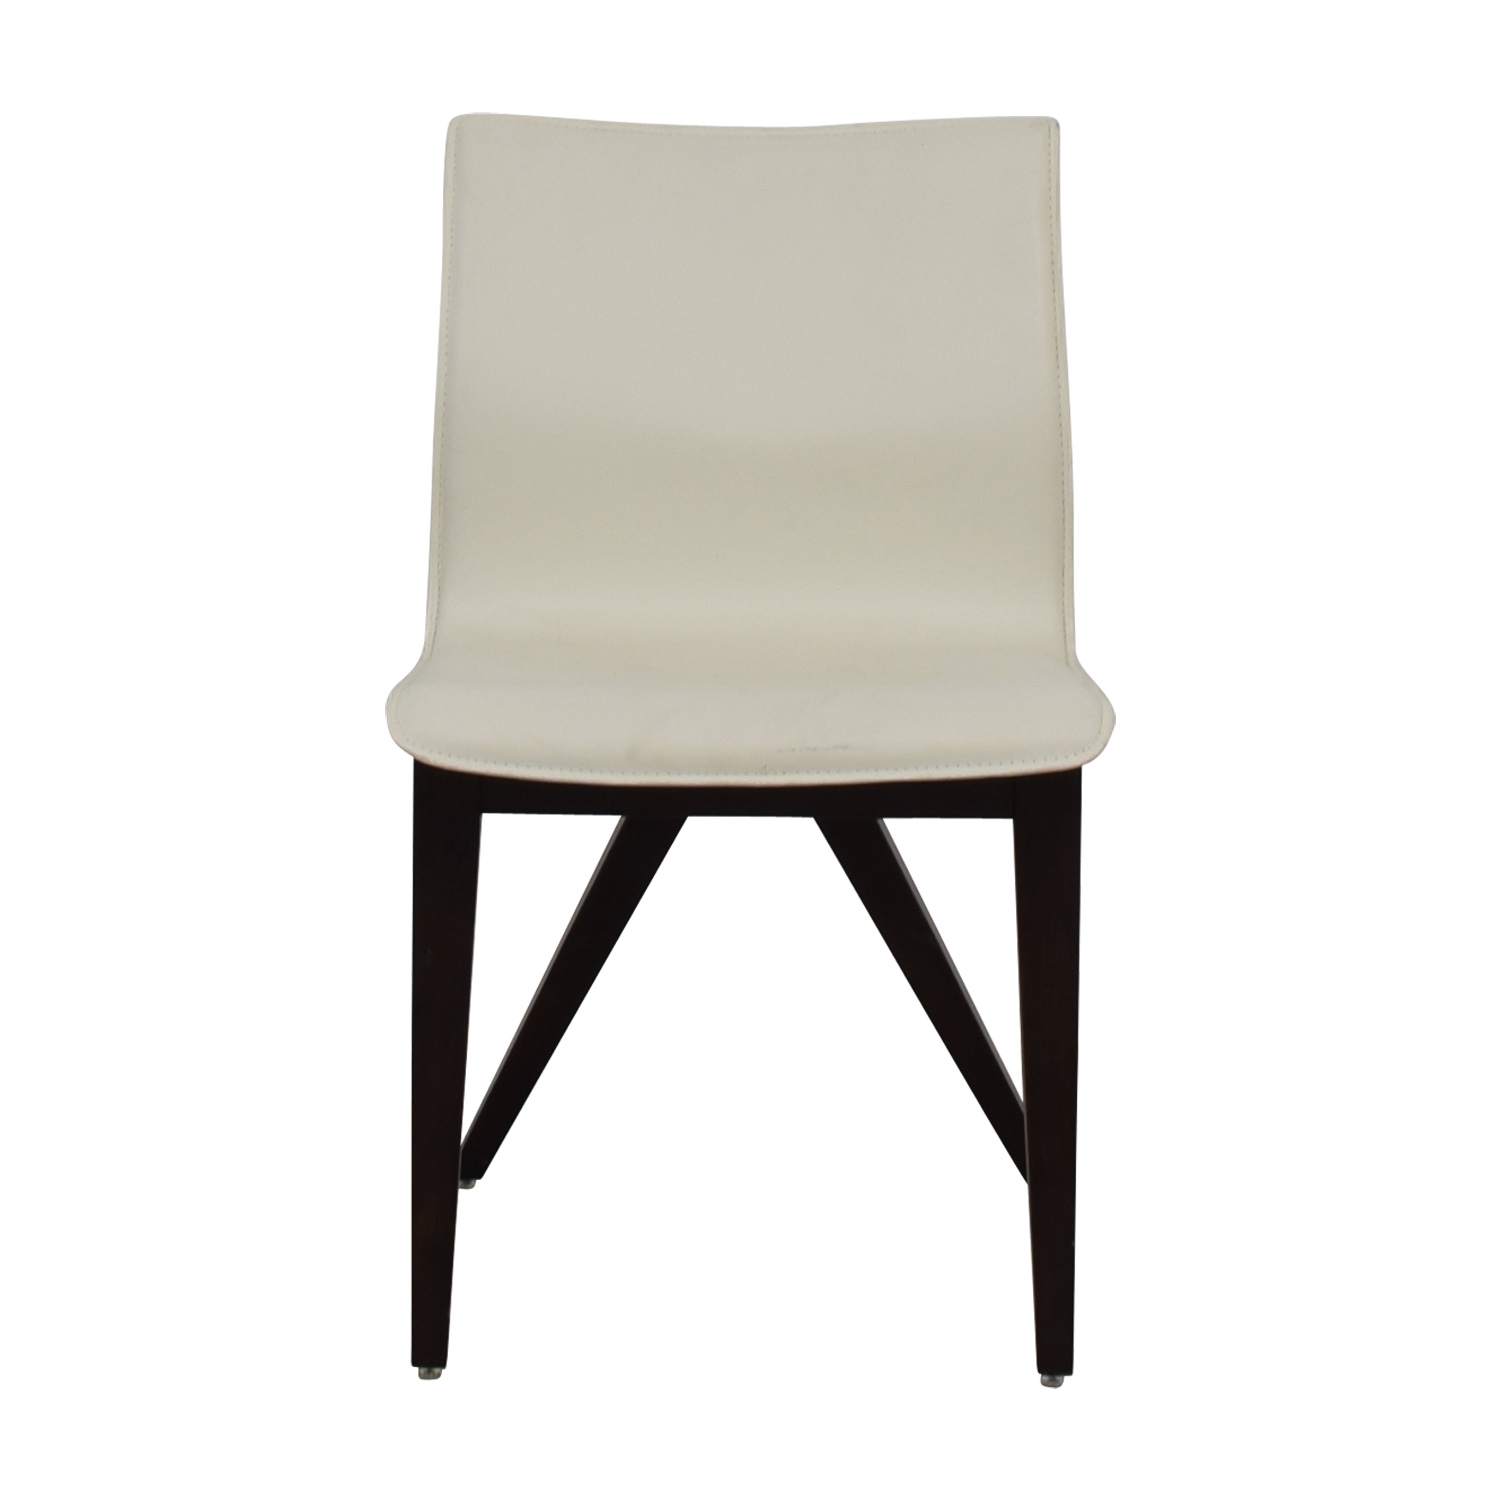 Cliff Young Cliff Young X-Back White Leather Chair used